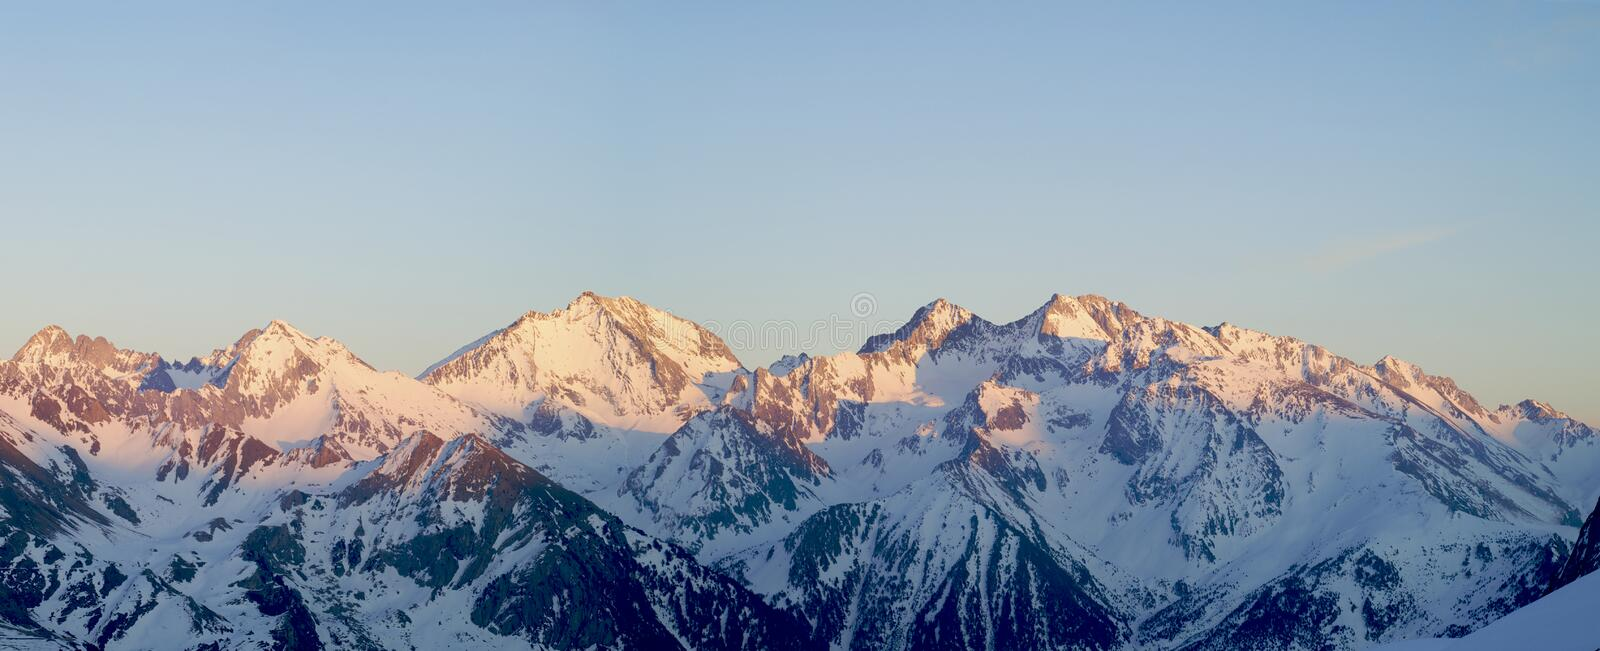 Download Panorama of the Pyrenees stock photo. Image of mountain - 11022364